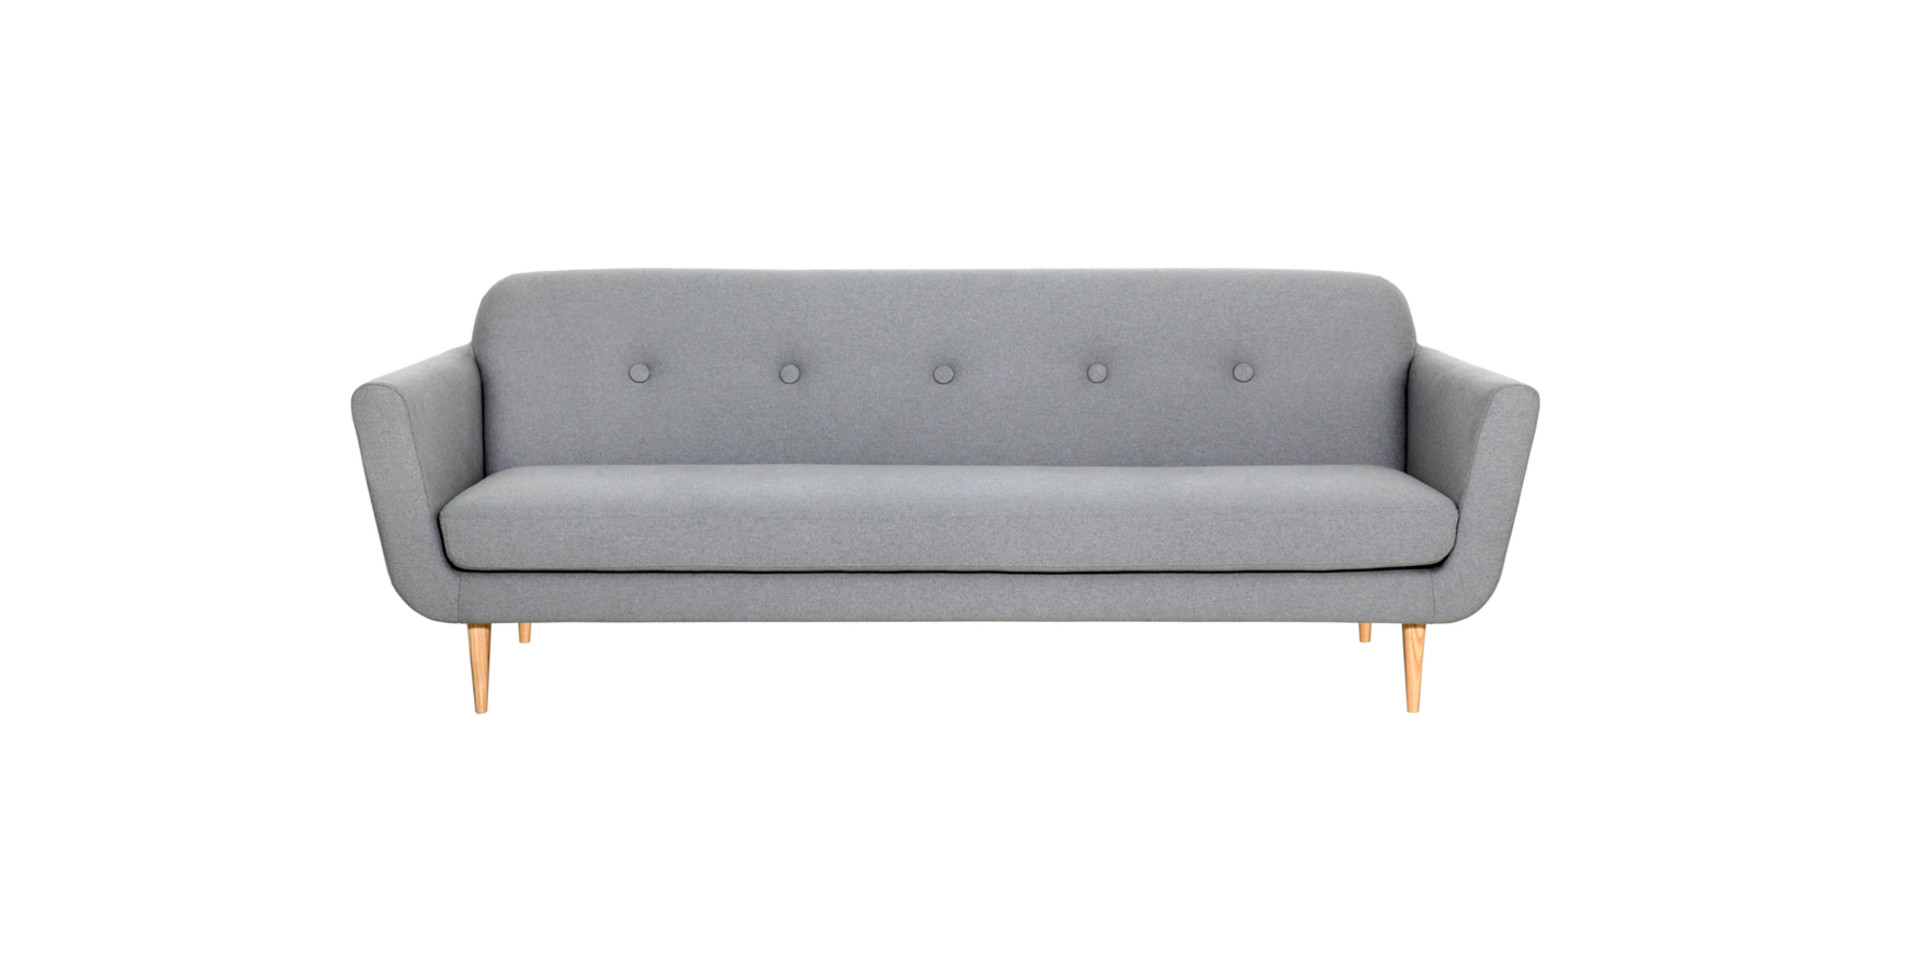 sits-otto-canape-3seater_caleido1497_light_grey_1